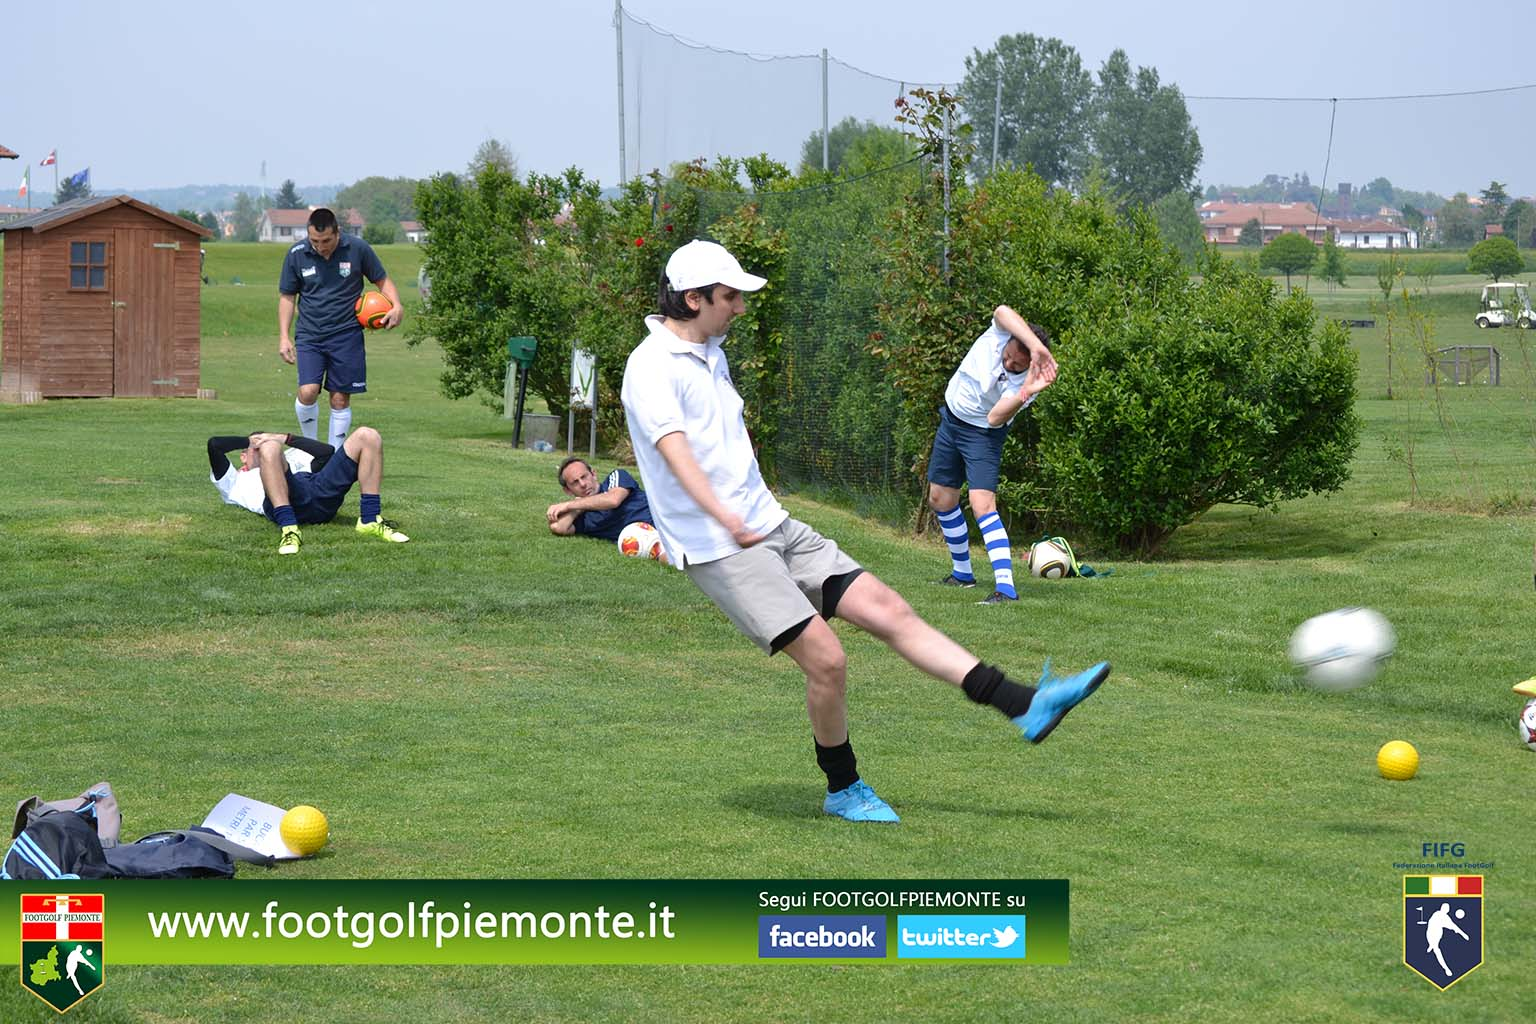 FOTO 9 Regions' Cup Footgolf Piemonte 2016 Golf Città di Asti (At) 30apr16-80